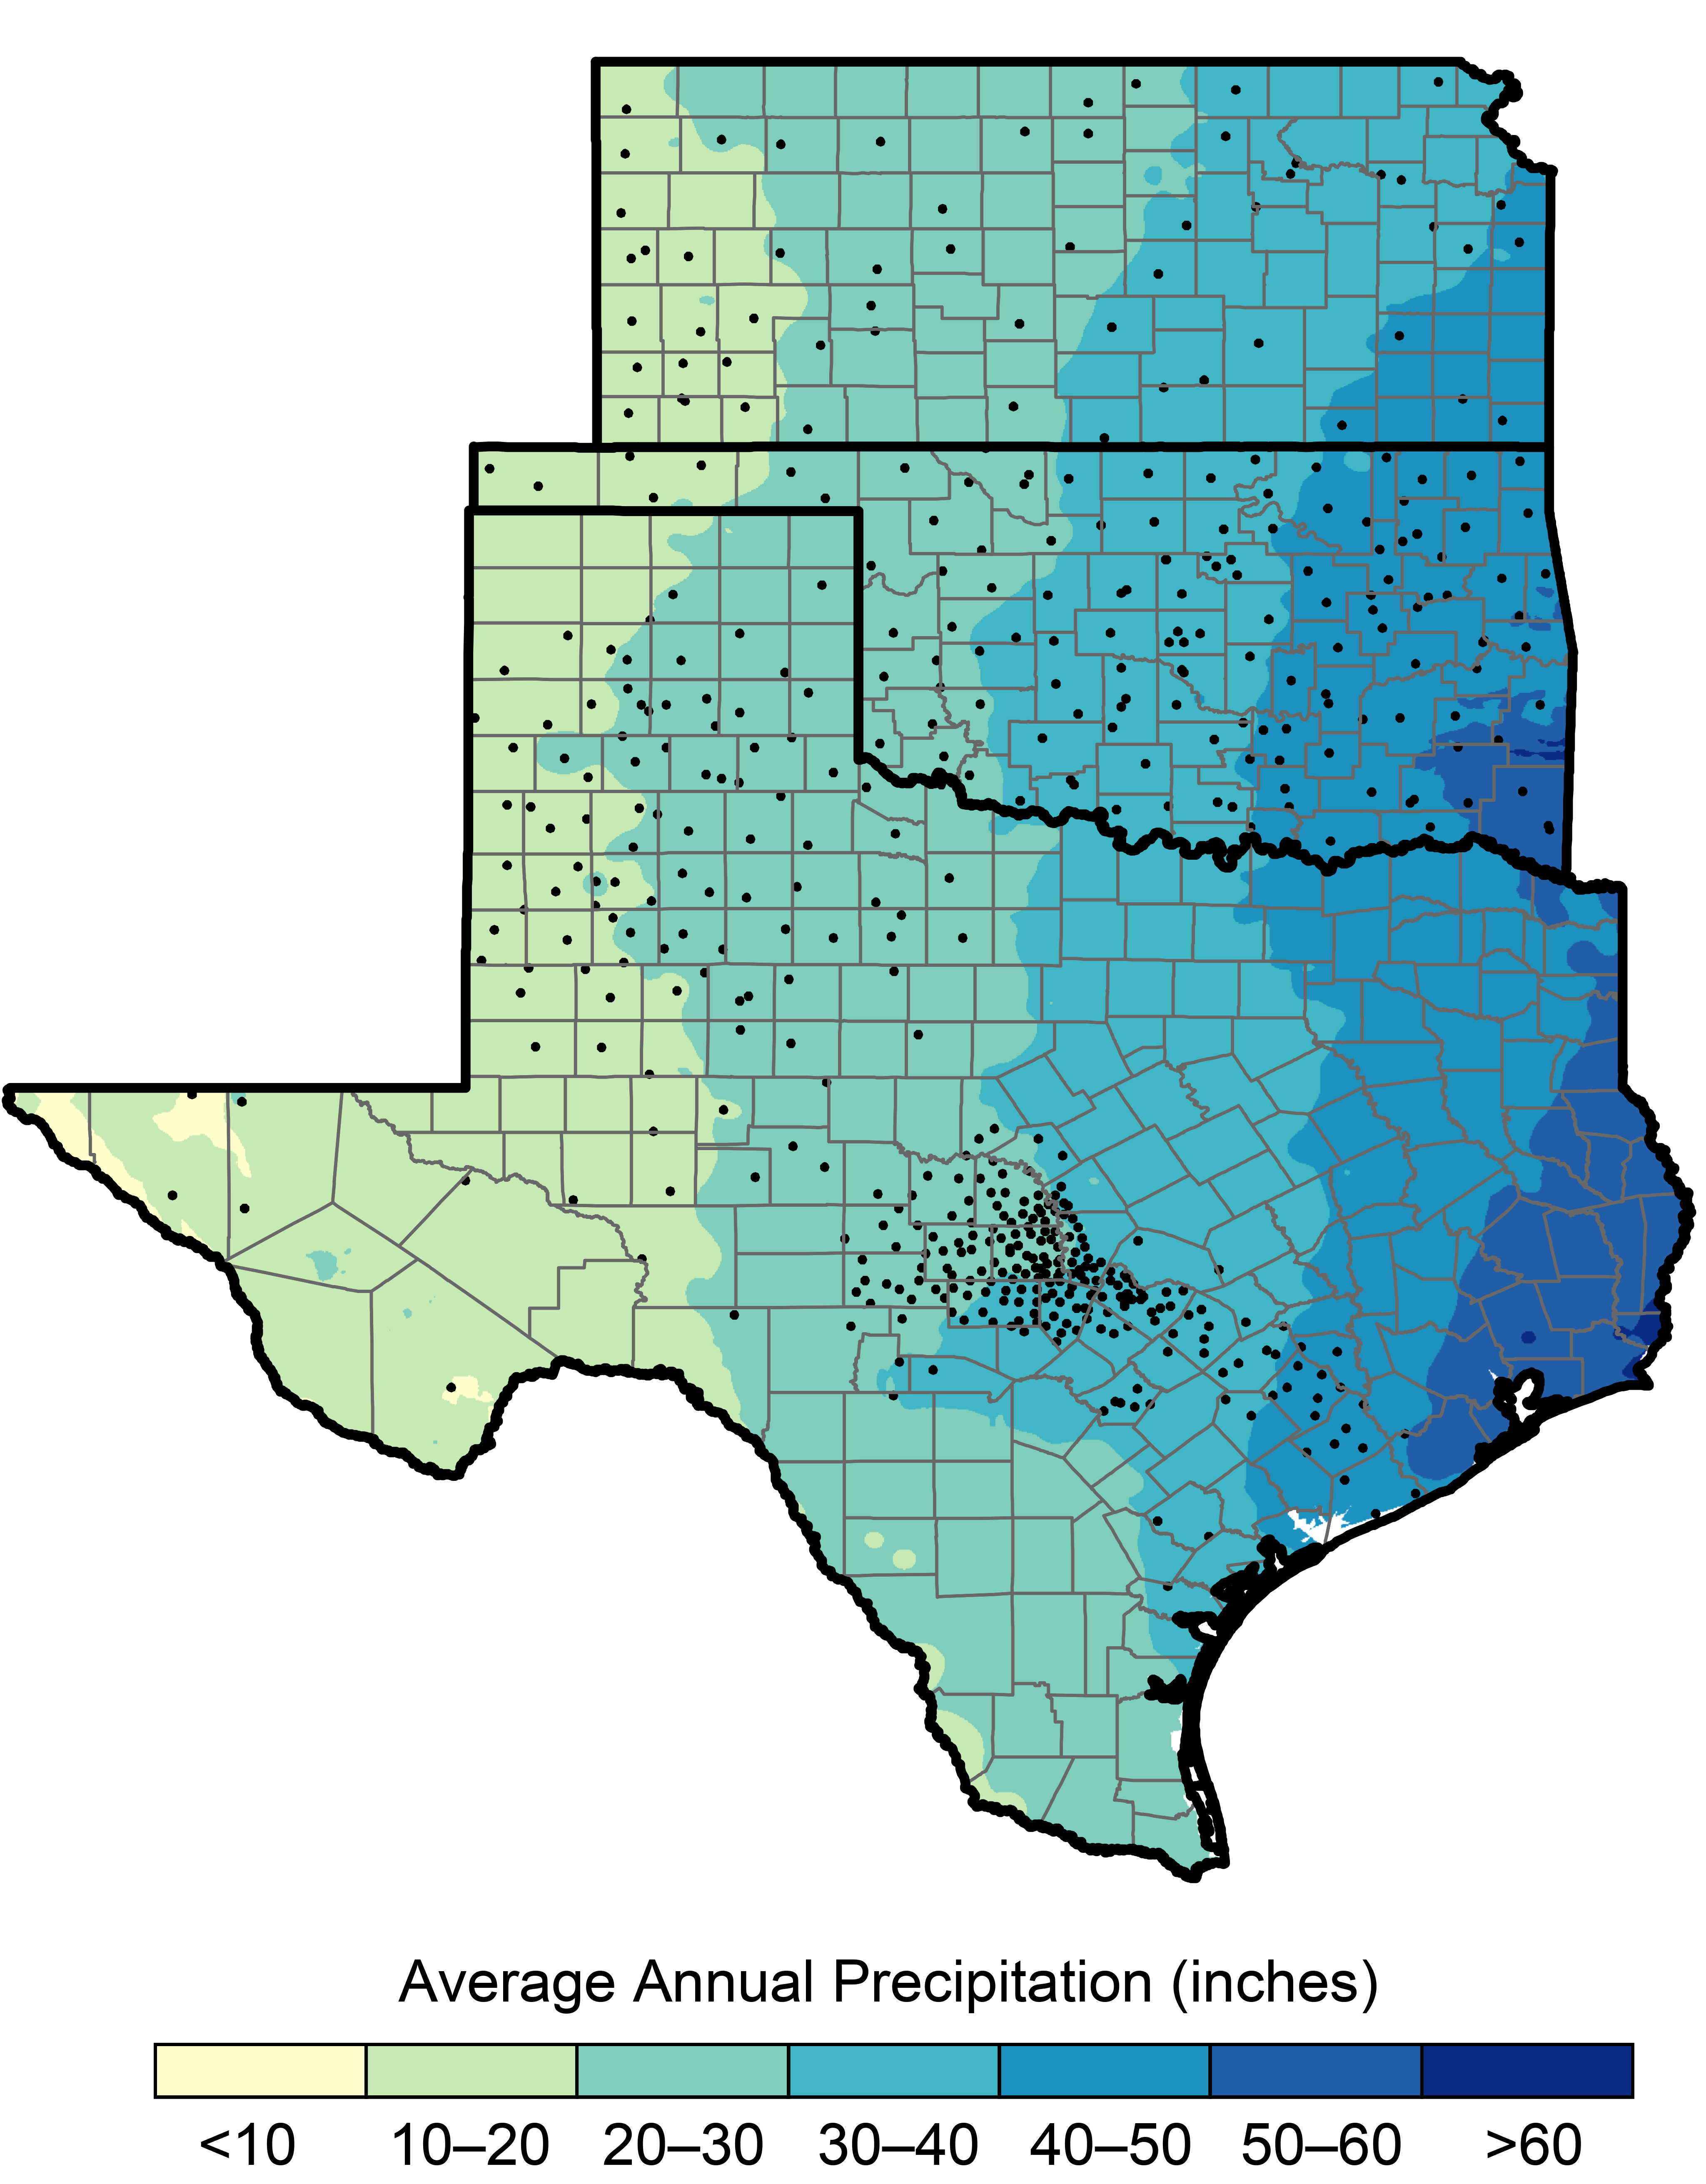 Southern Great Plains Fourth National Climate Assessment